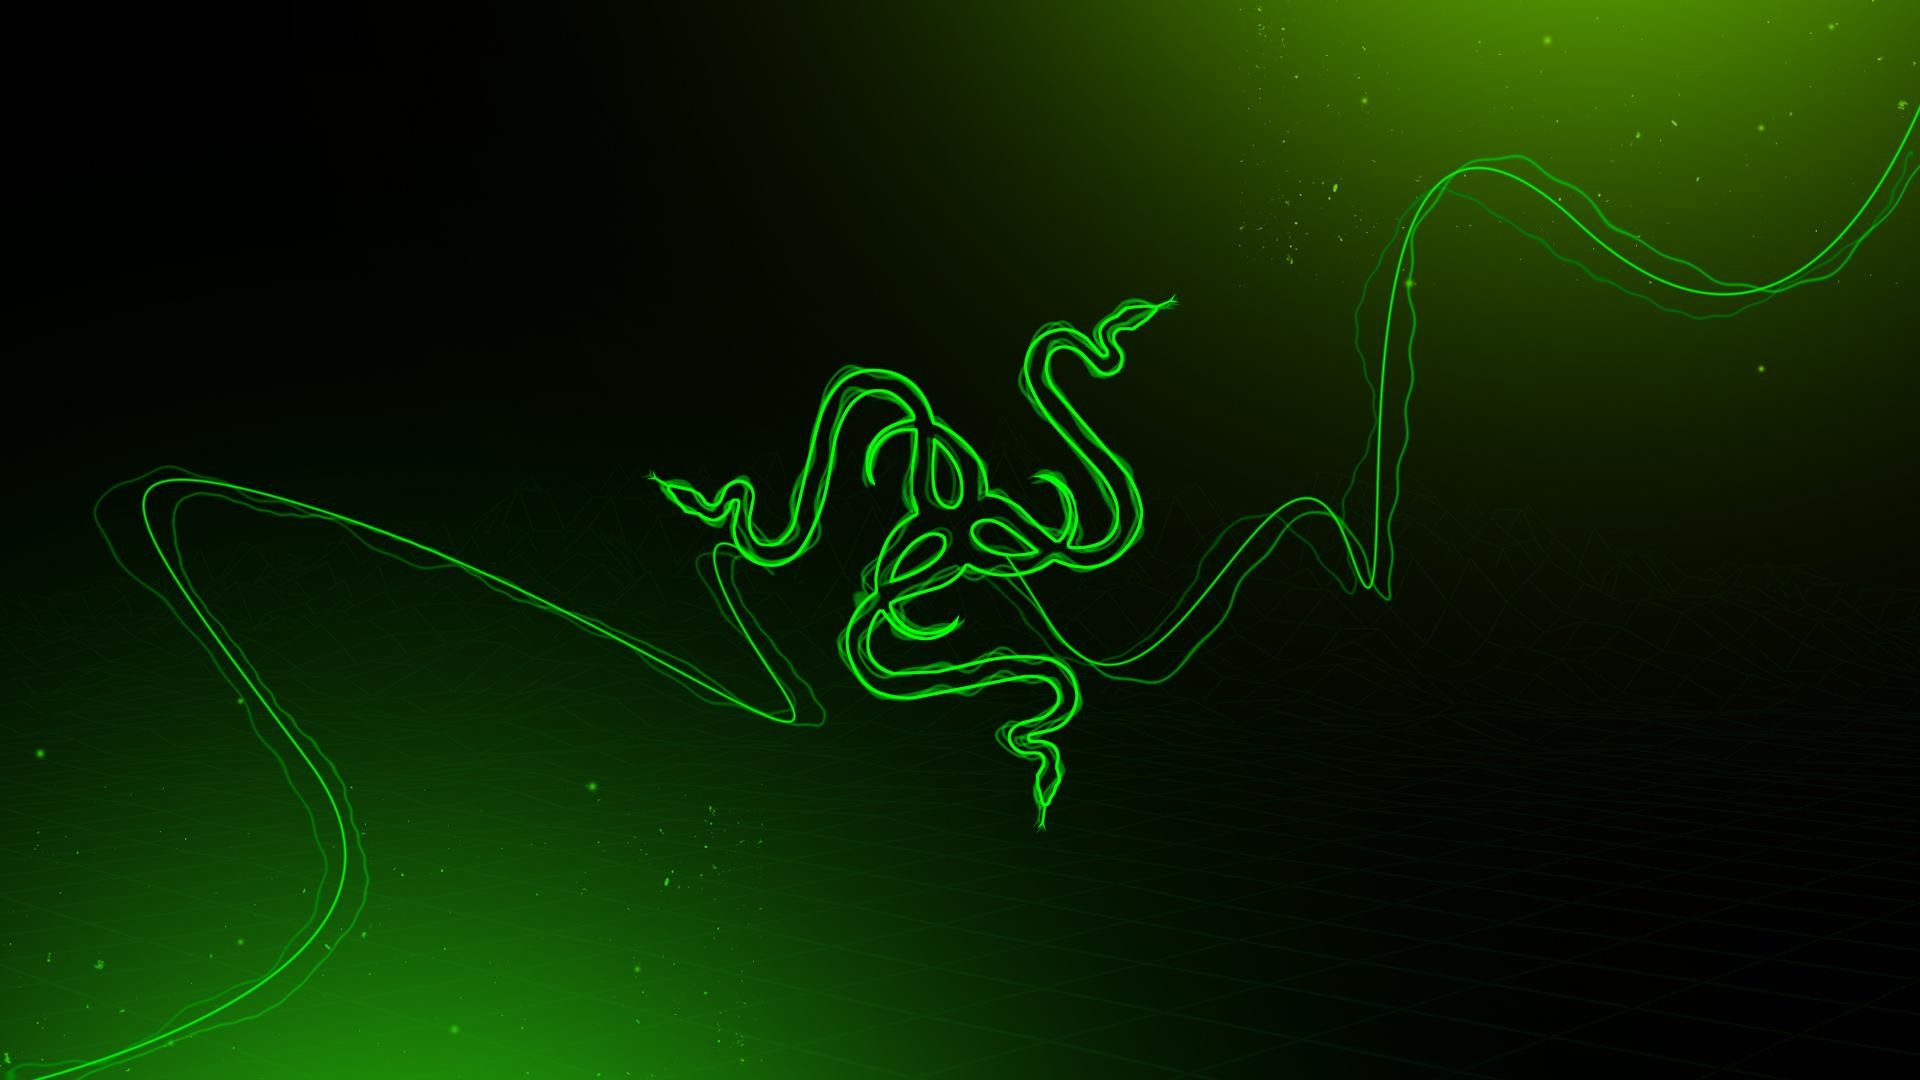 4K Razer Wallpapers High Quality | Download Free